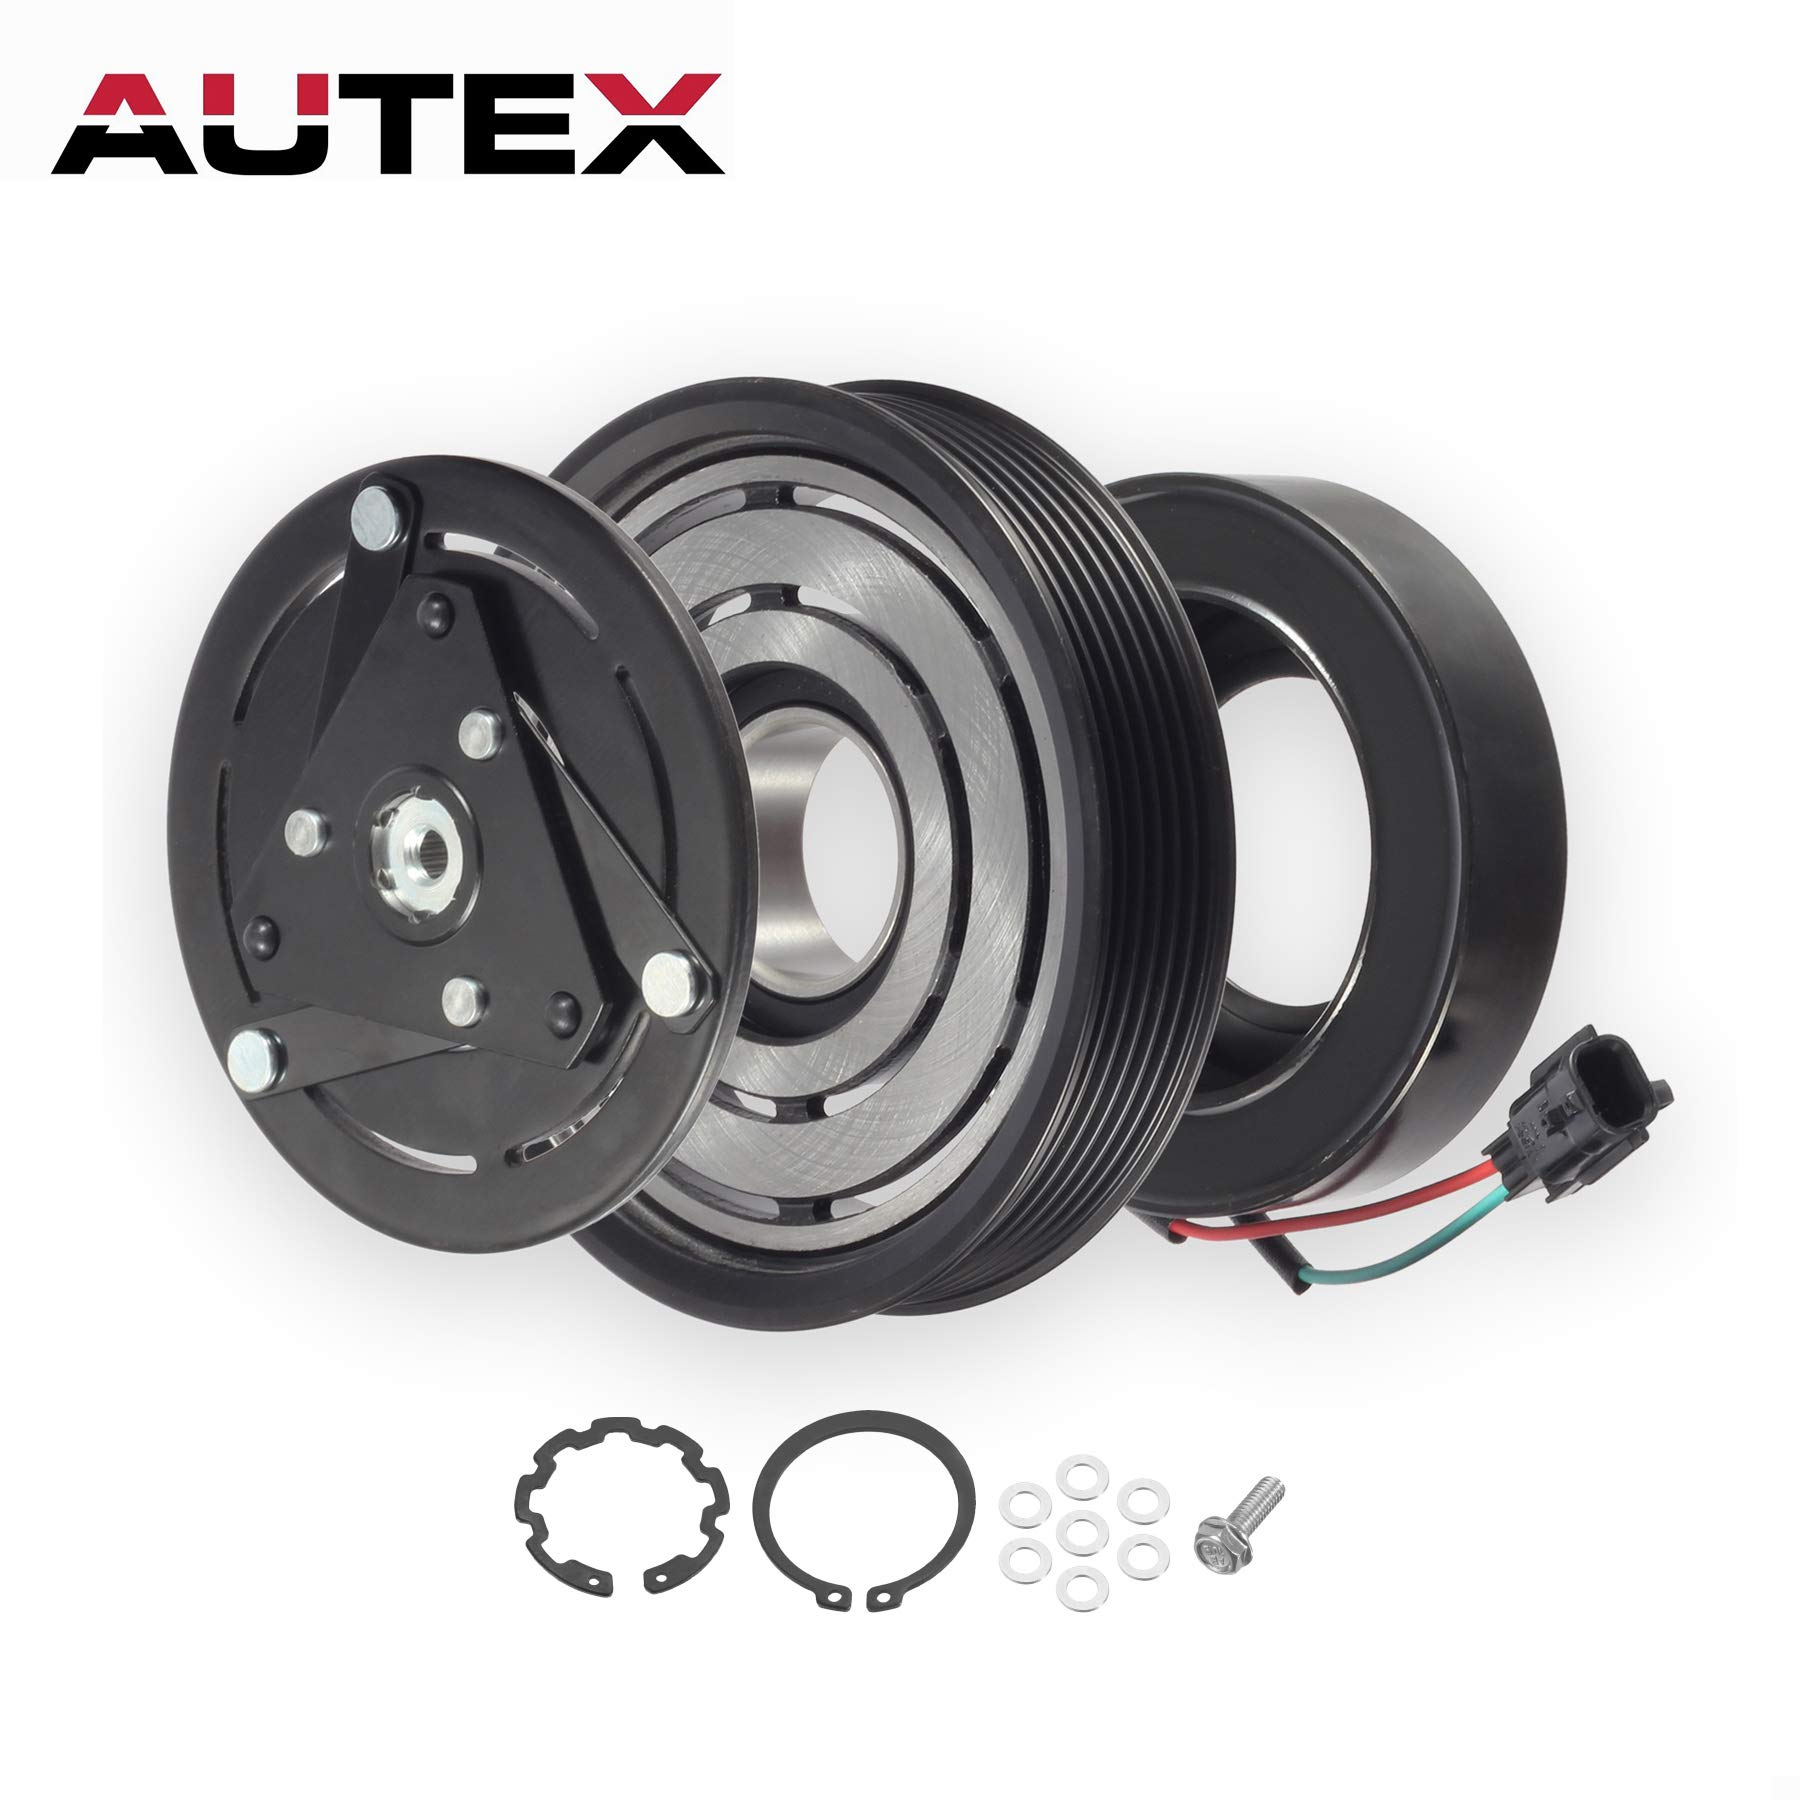 AUTEX AC A/C Compressor Clutch Coil Assembly Kit 92600JA00A Replacement for NISSAN ALTIMA 2007 2008 2009 2010 2011 2012 4CYL 2.5L/compatible with Nissan Sentra 2007 2008 2009 2010 2011 2012 4CYL 2.5L